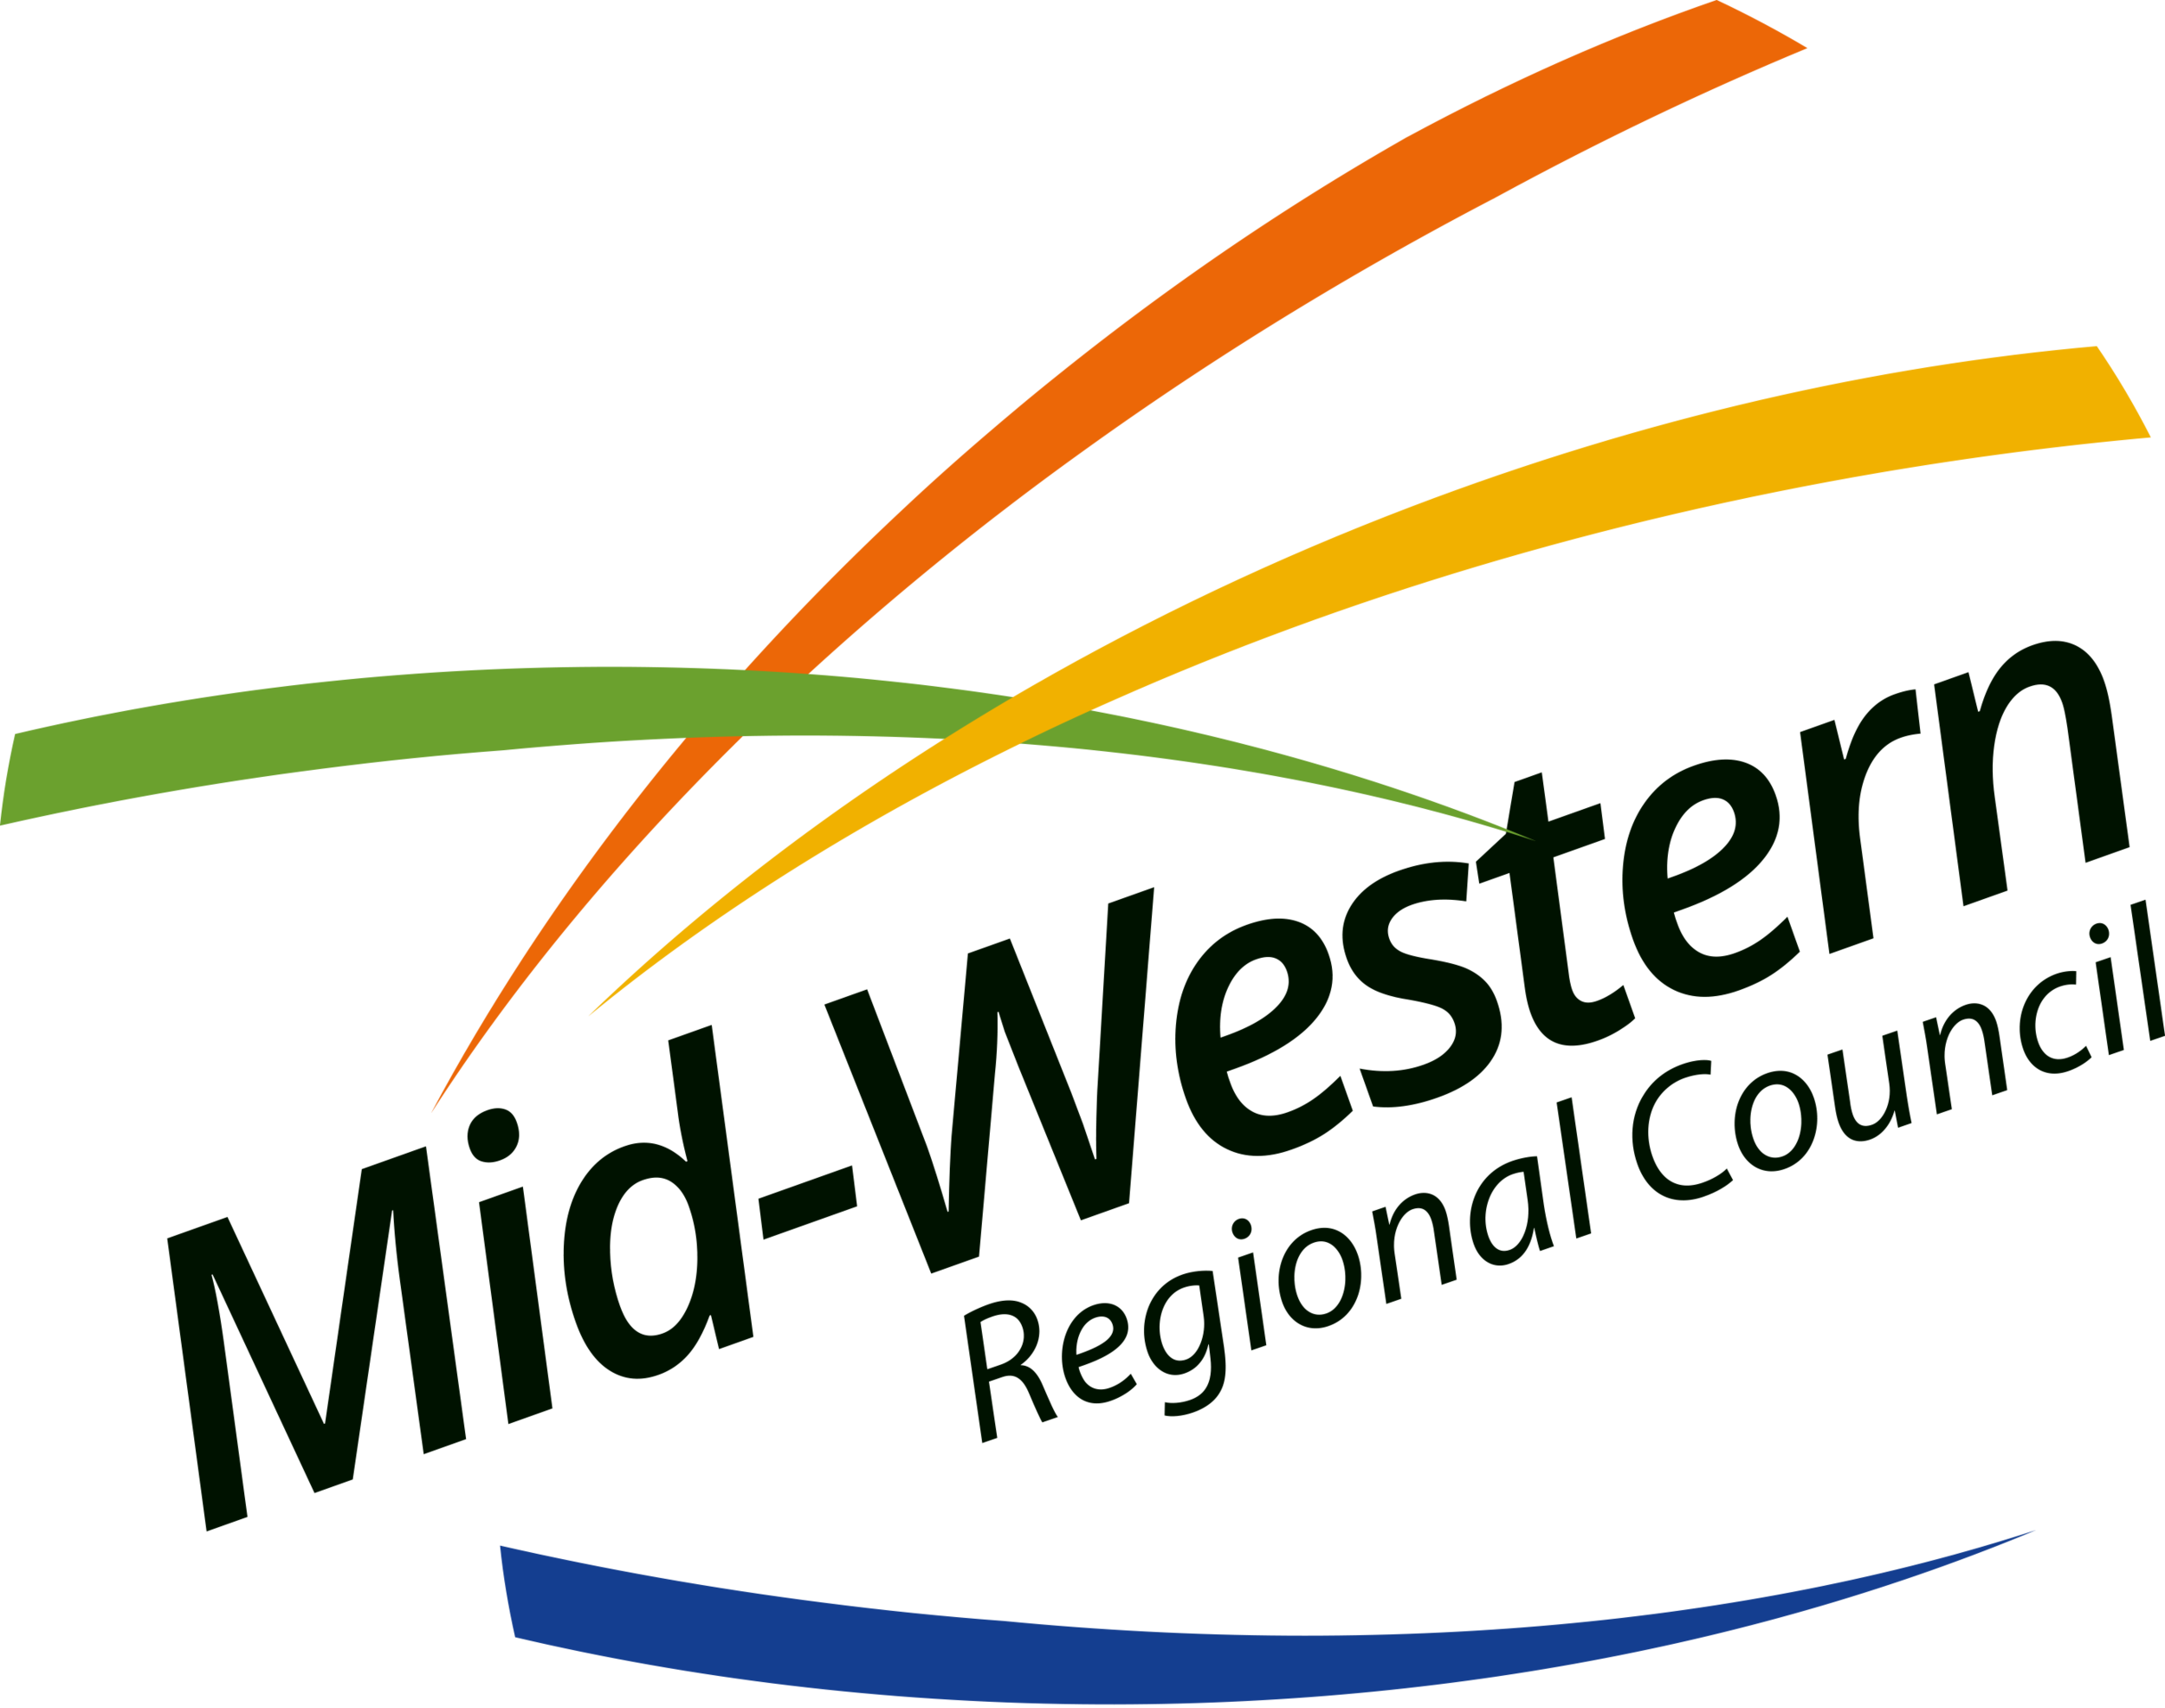 mwrc-logo-final-redesign---large.png